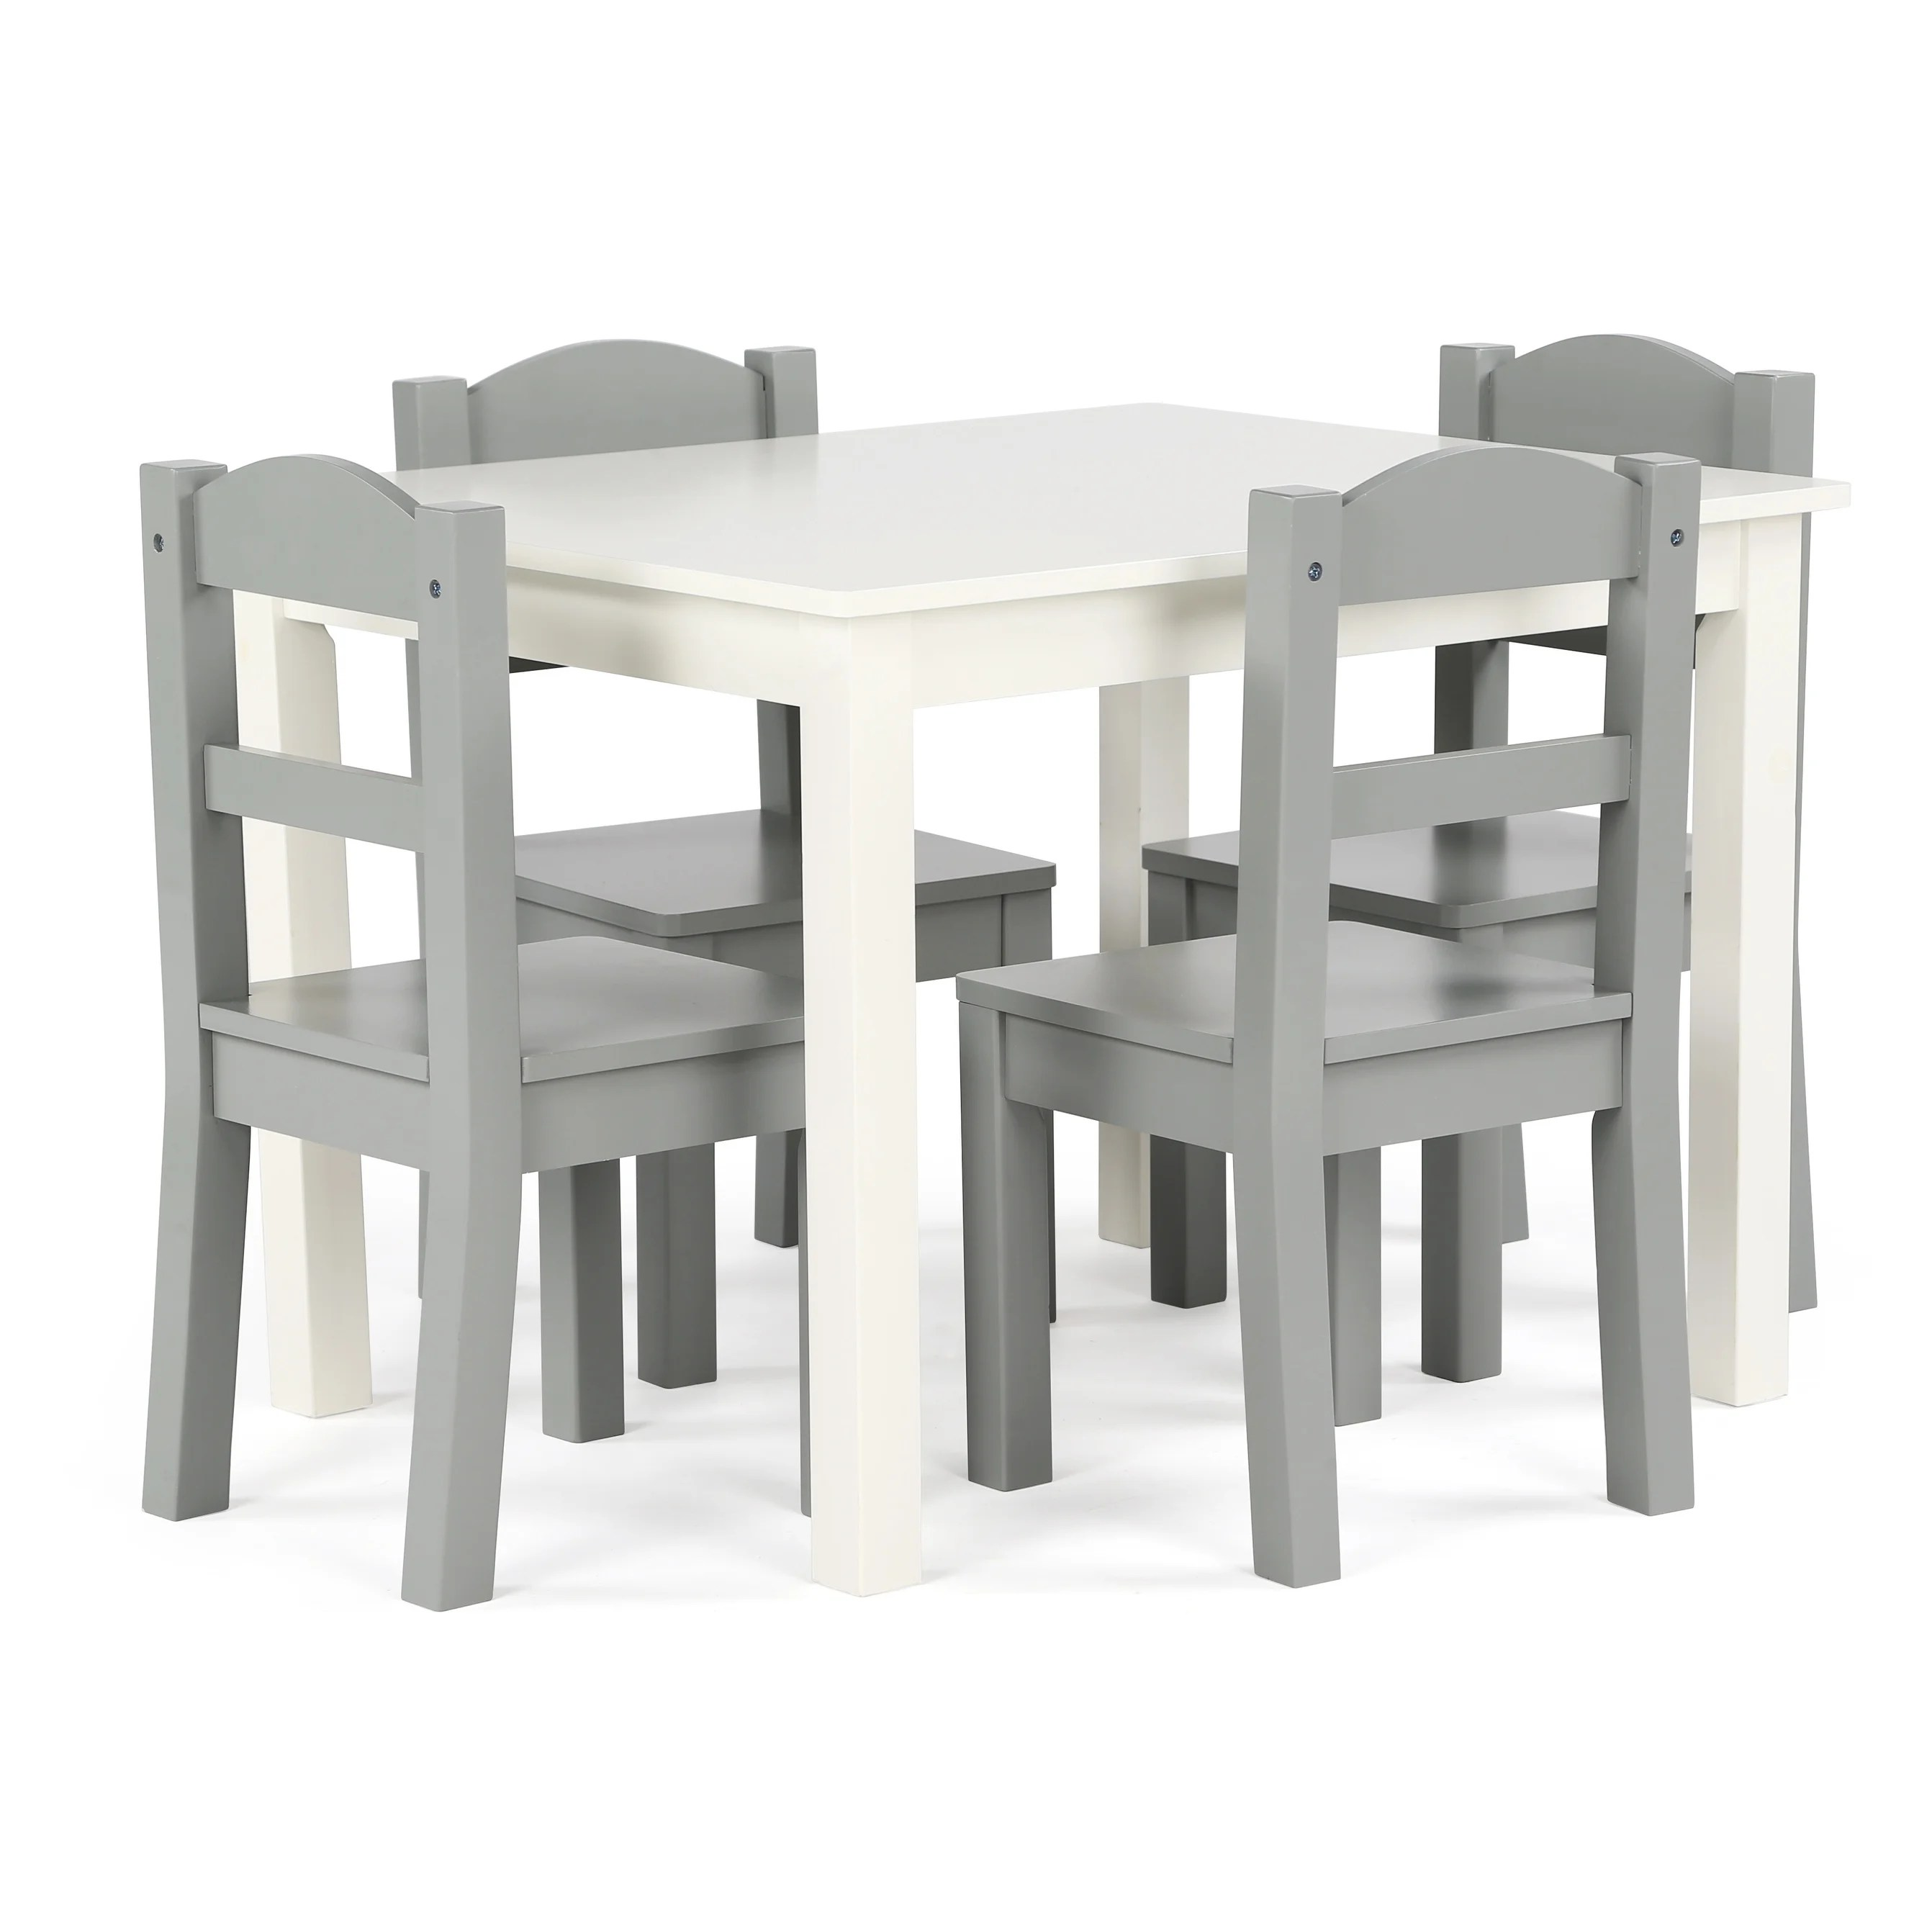 Infant Table And Chairs Springfield 5 Piece Wood Kids Table Chairs Set In White Grey